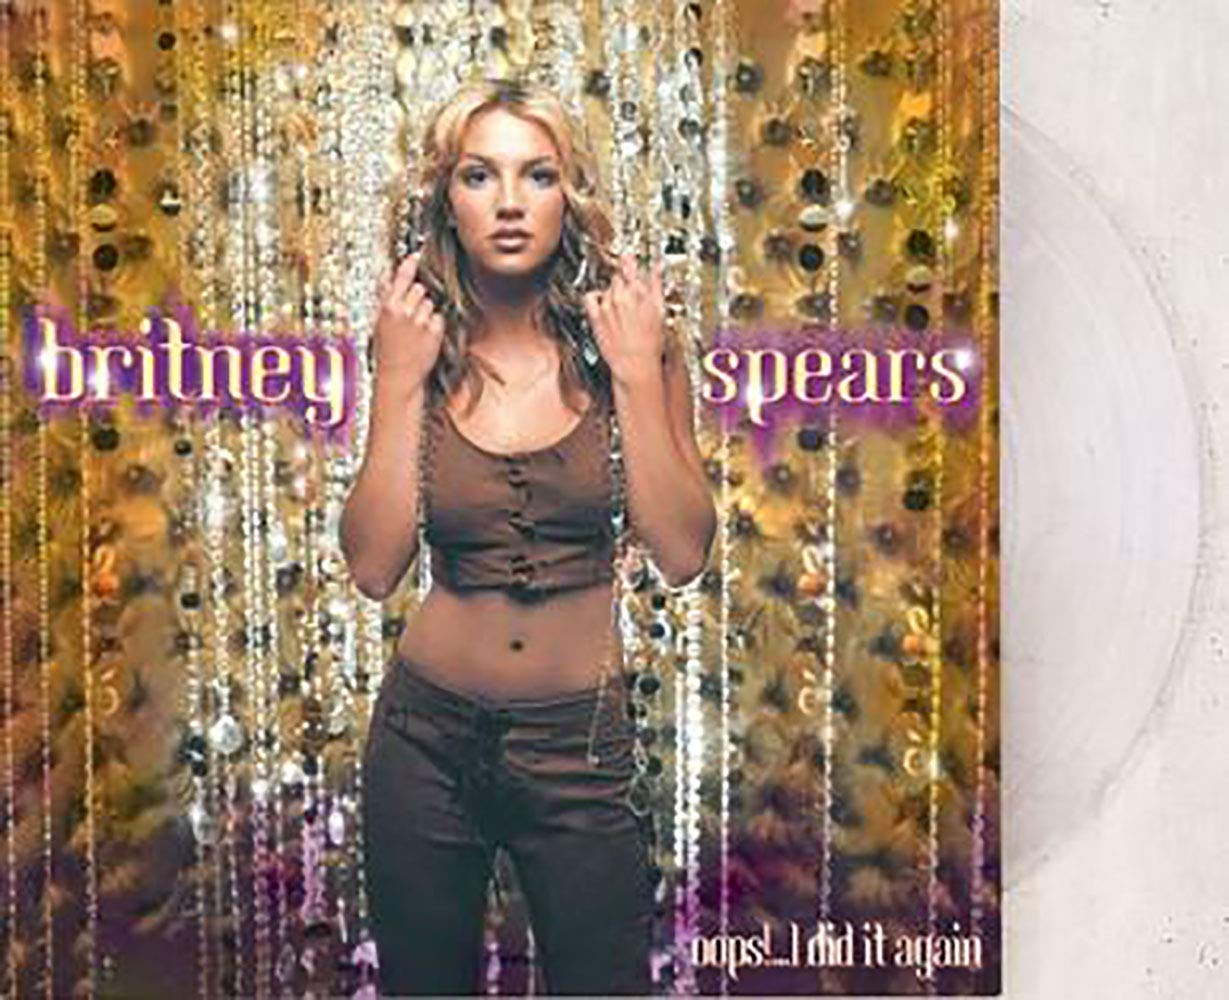 Britney Spears Various Artists Oops I Did It Again Exclusive Limited Edition Clear Colored Vinyl Lp 2000 Amazon Com Music